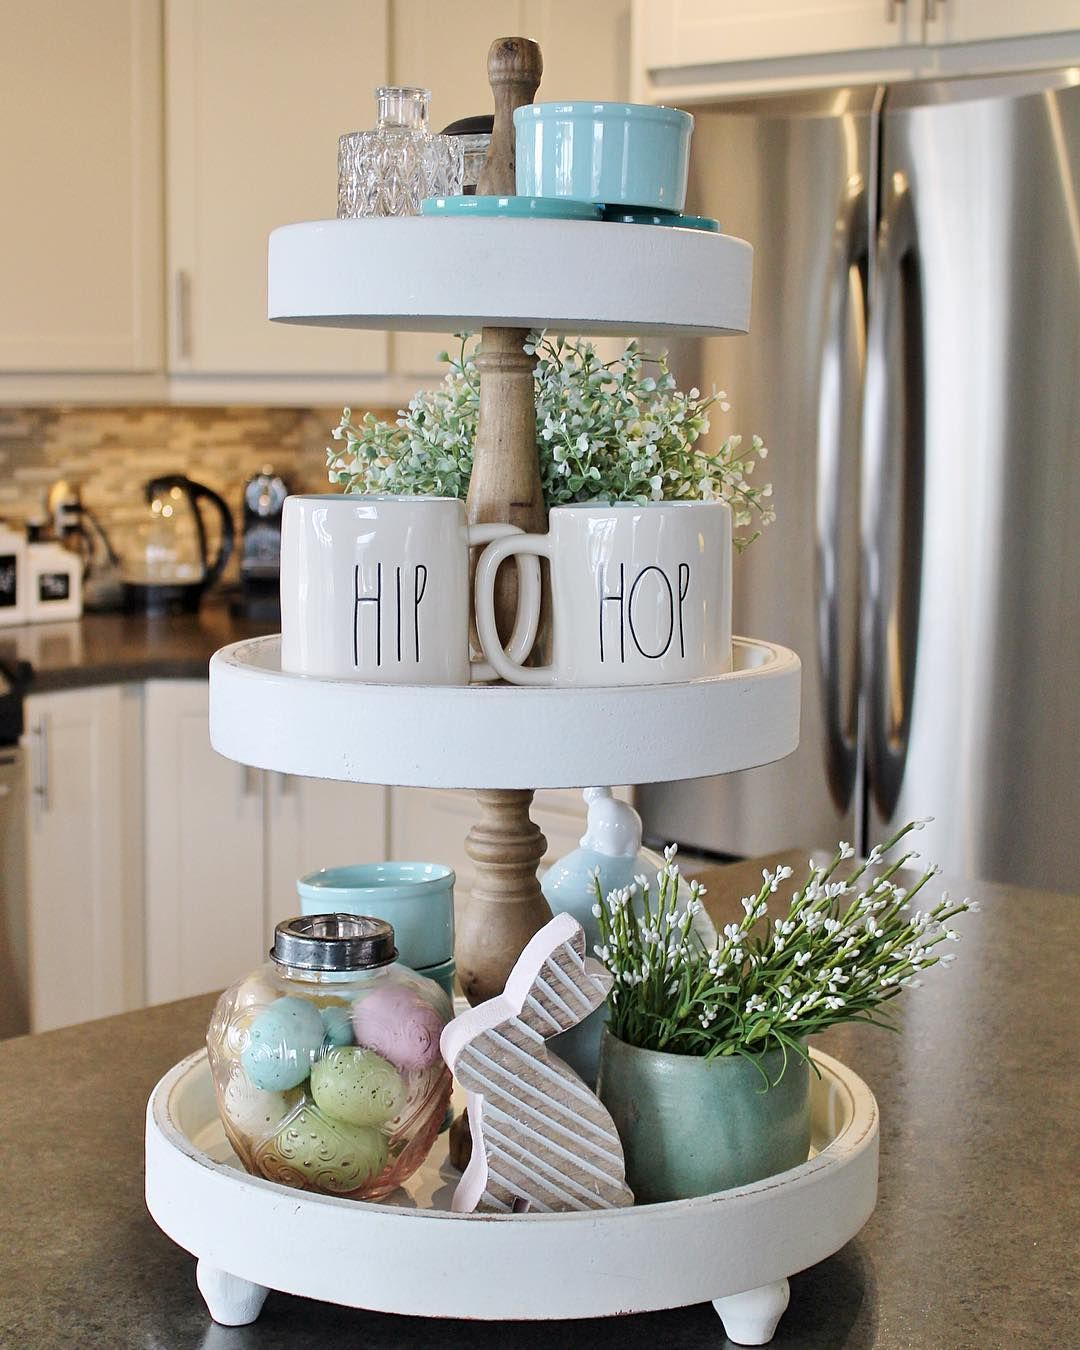 Why White Kitchen Interior Is Still Great For 2019: Pin By Sheri Pereira On Spring...Wonderful...Spring In